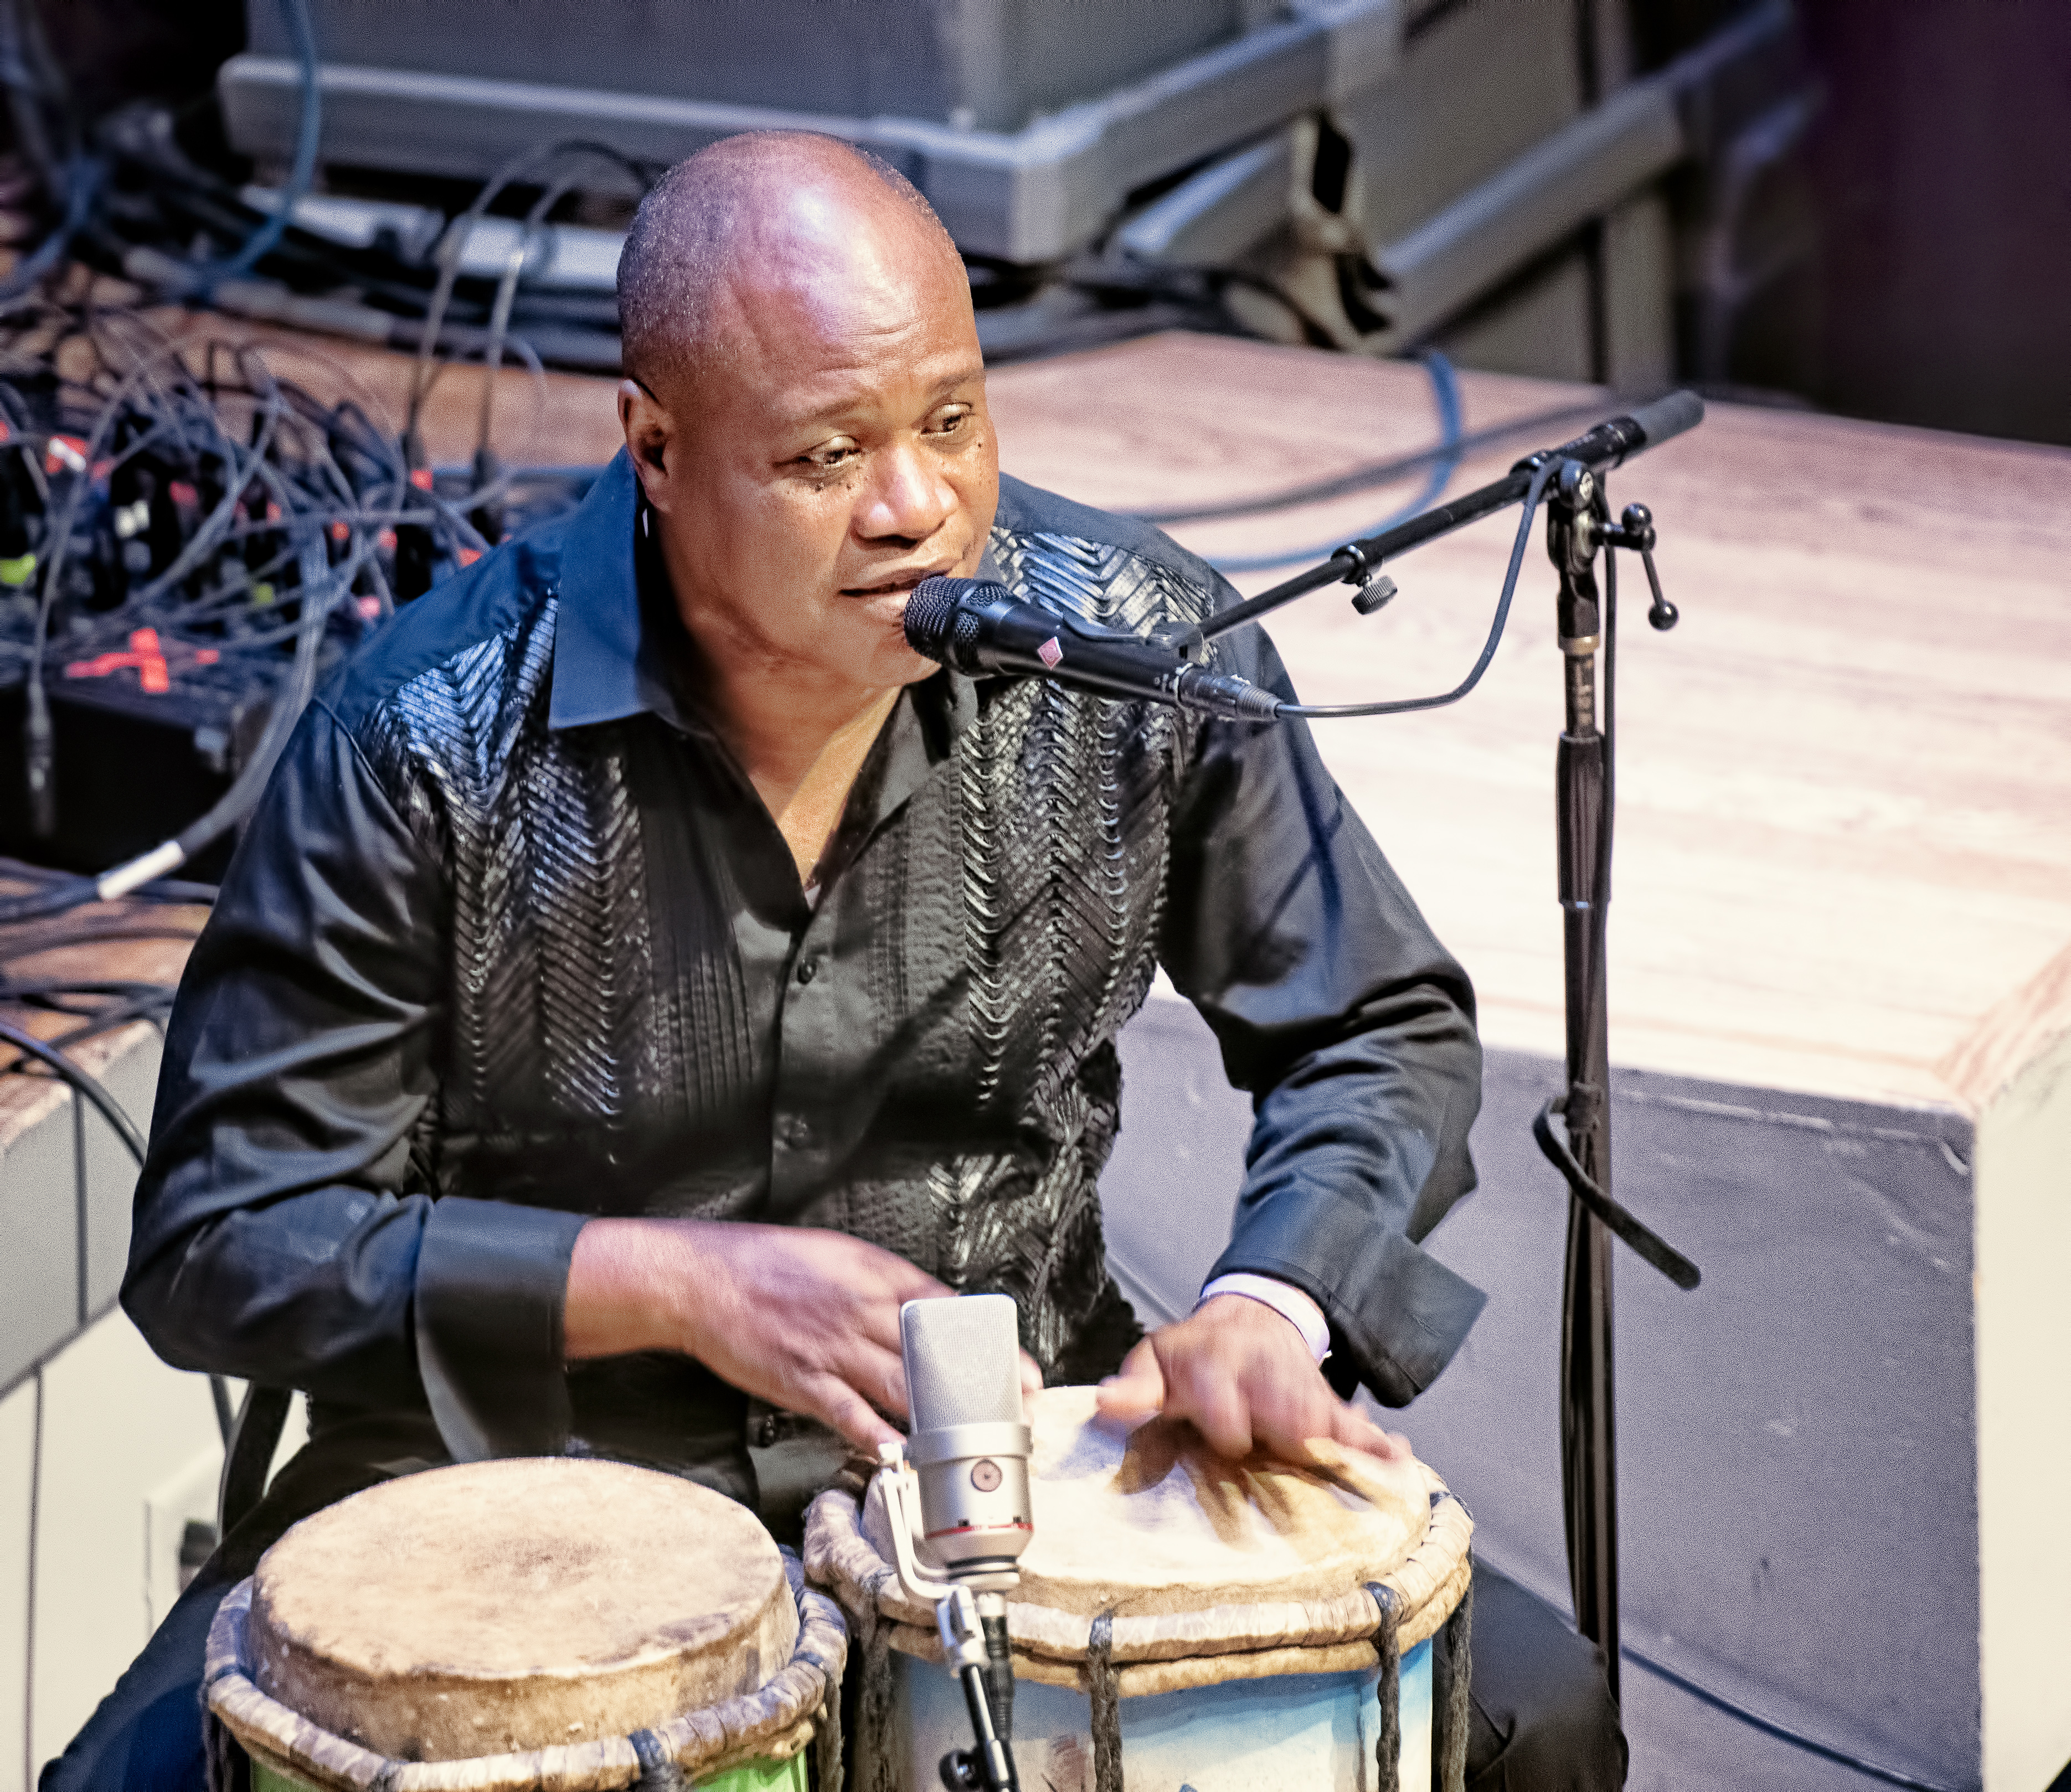 Jean Guy Rene with Andrew Cyrille and Haitian Fascination At the Vision Festival 2019